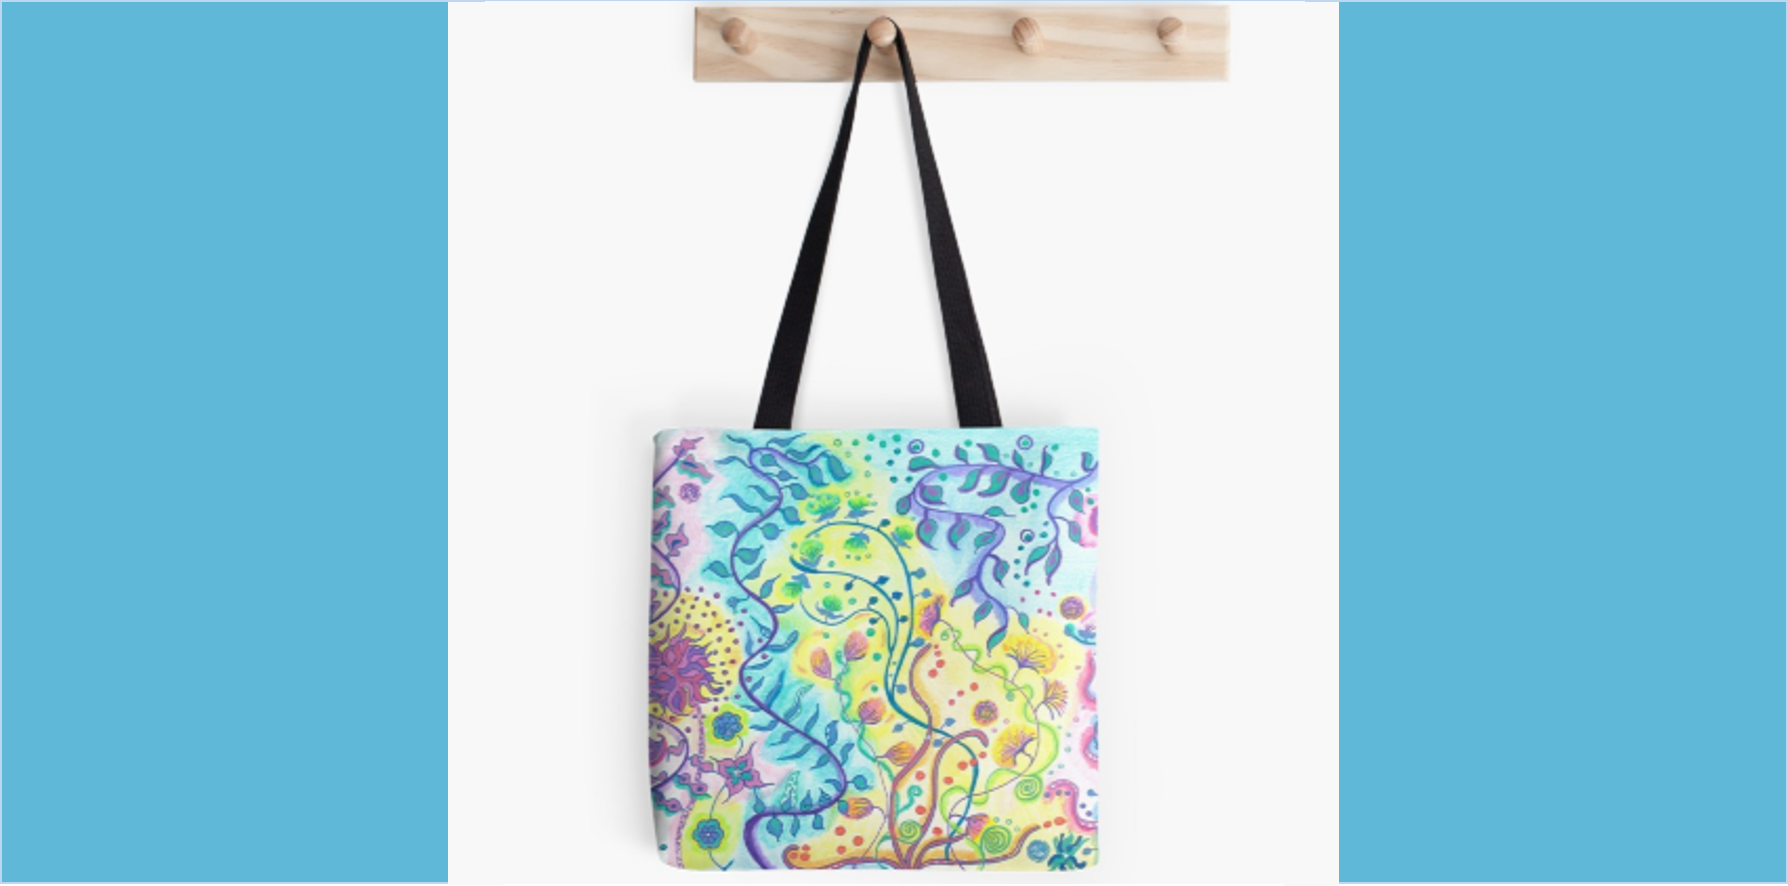 Tote bag floral abstract design